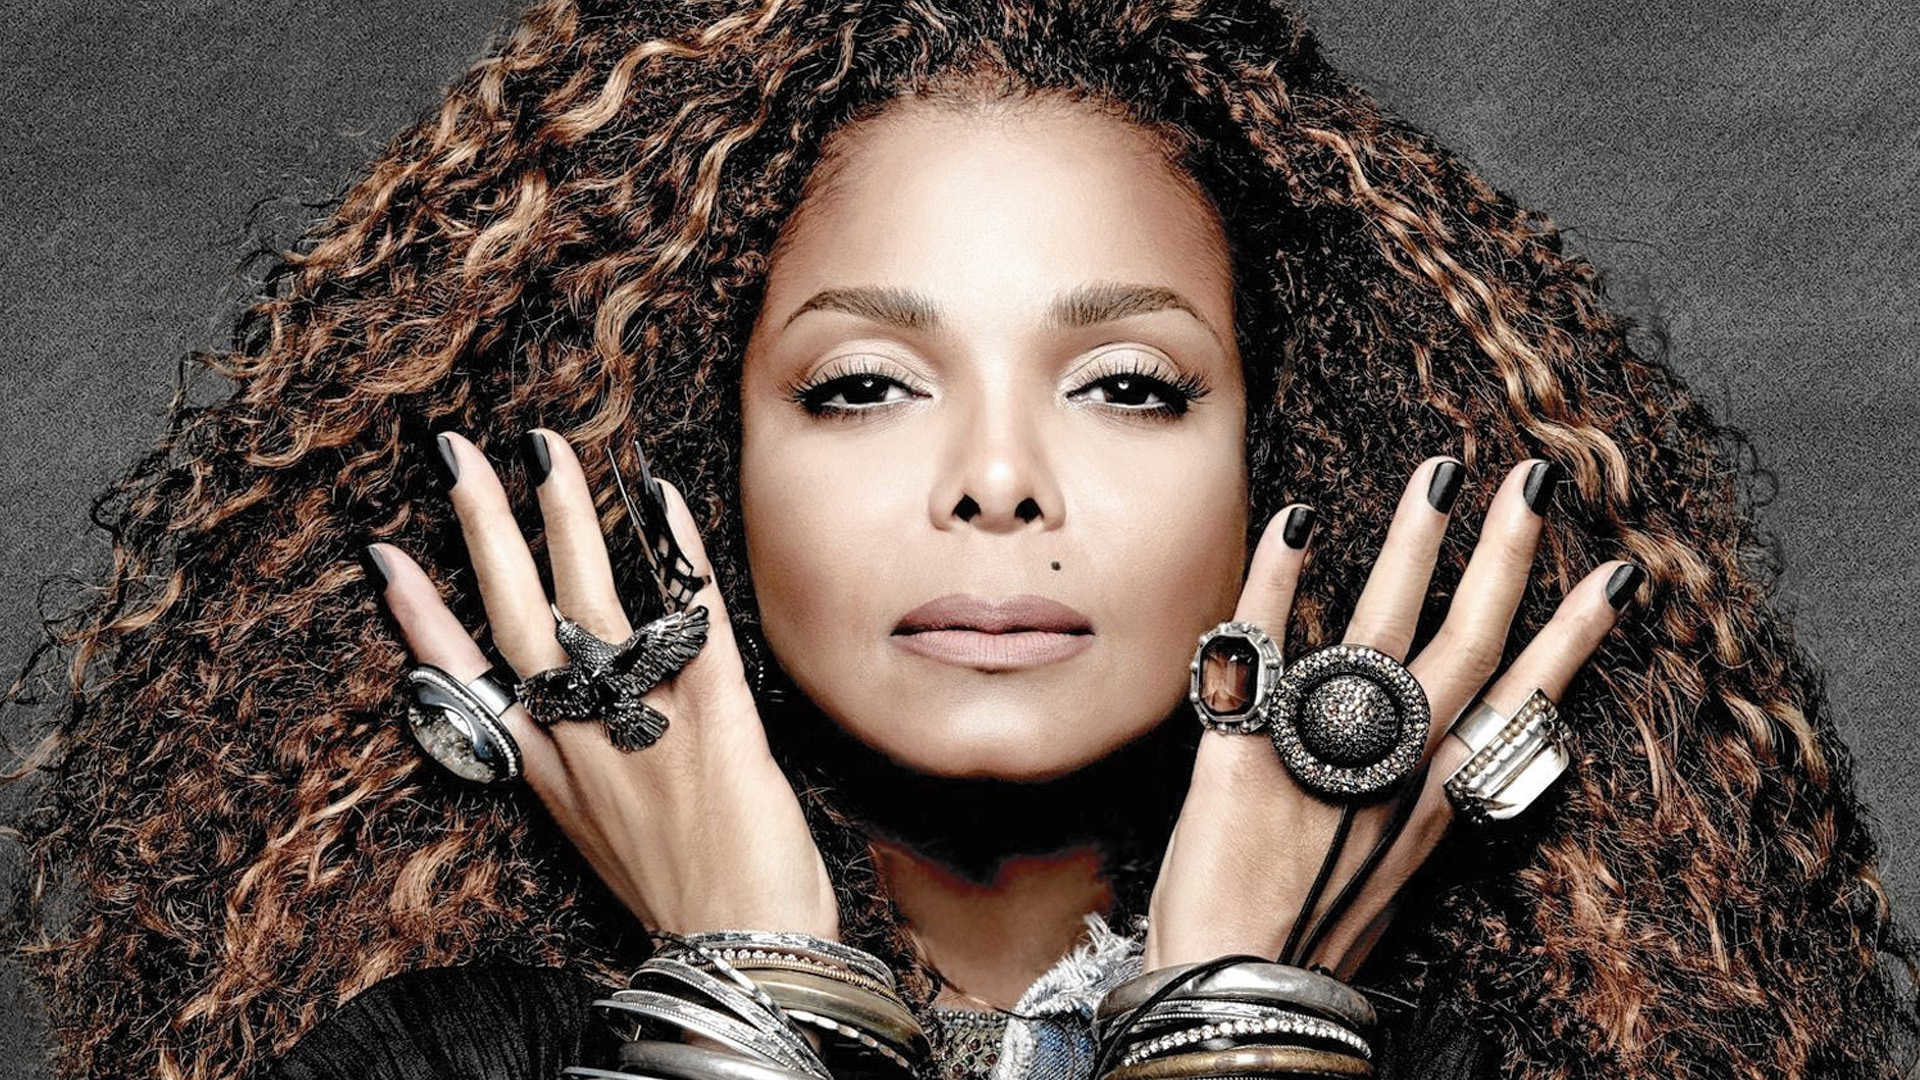 1920x1080 janet jackson Wallpaper HD Wallpaper